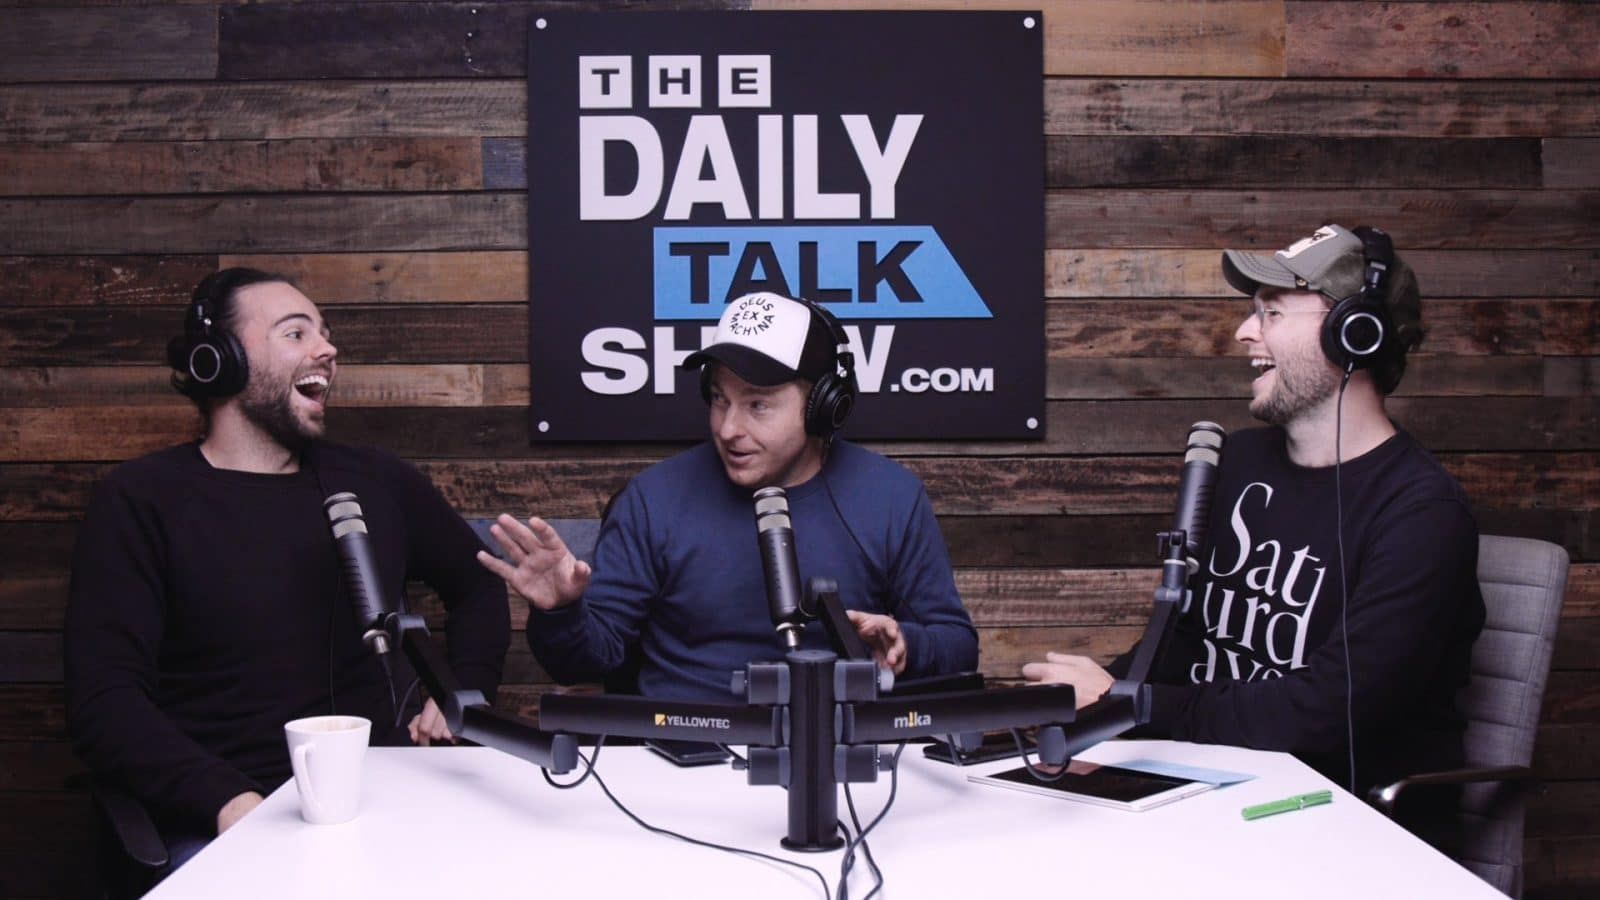 The-Daily-Talk-Show-401